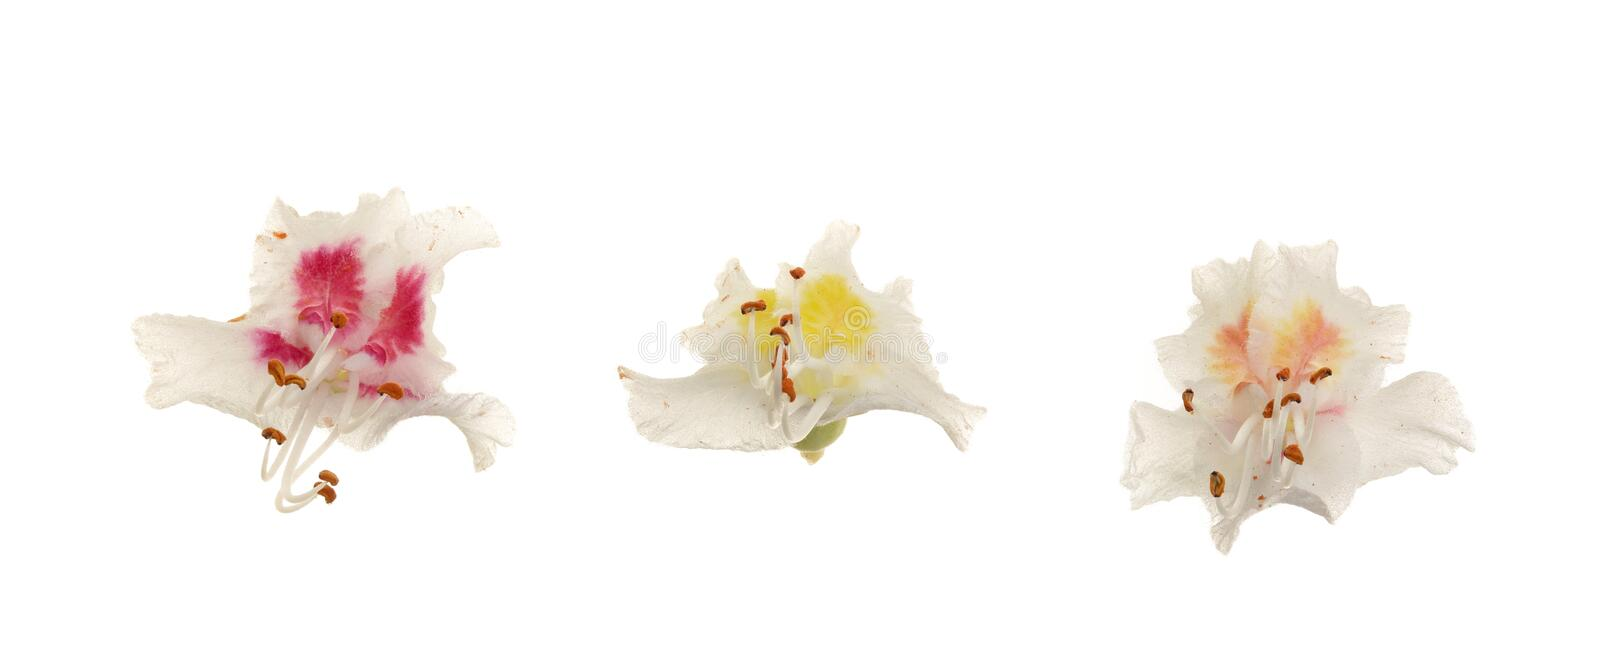 Chestnut flower or Aesculus hippocastanum, Conker tree with leaves isolated on white background.  stock photo